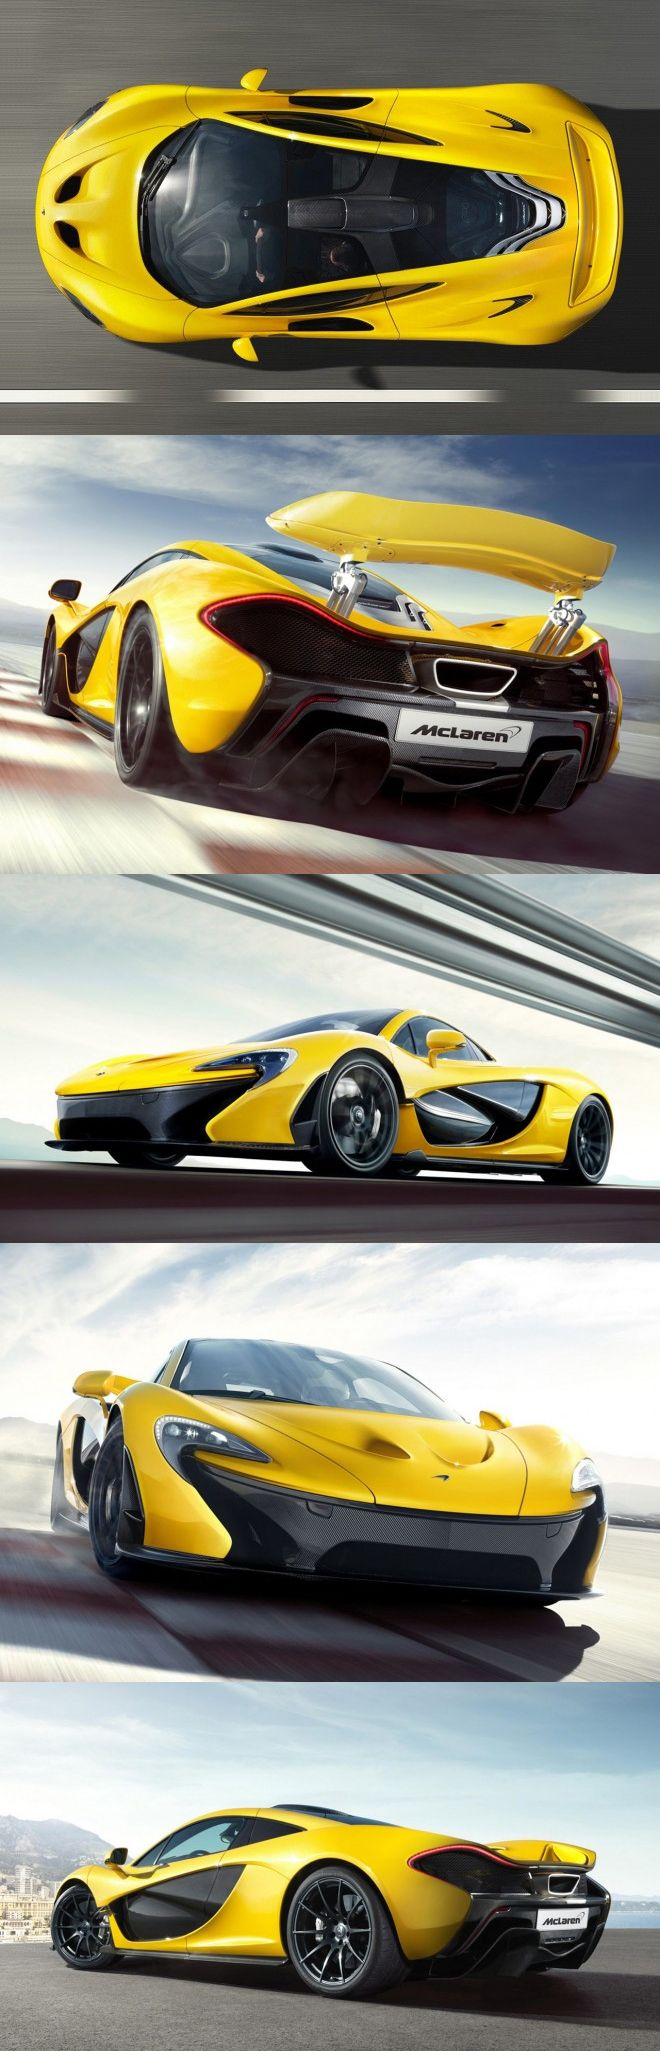 The McLaren P1 sports a 3.8 liter twin-turbocharged V8 engine mated to a seven-speed-dual-clutch automatic gearbox.